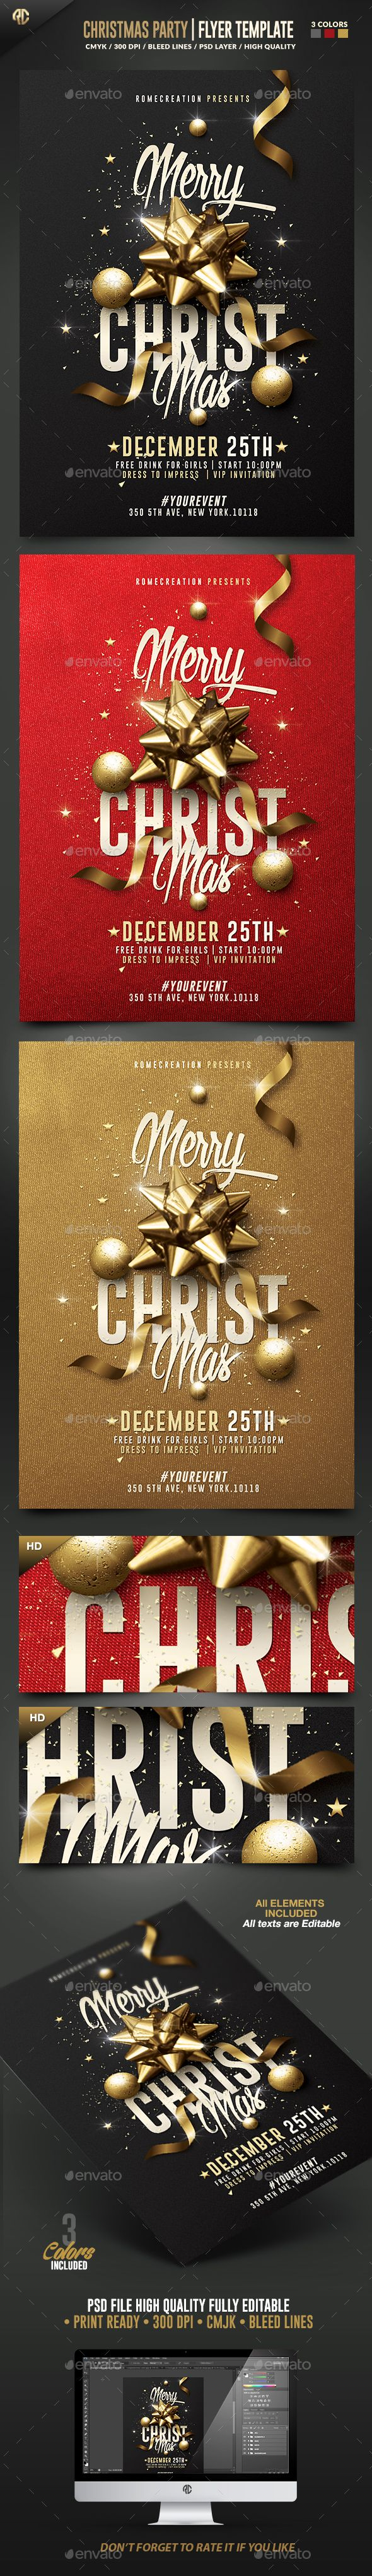 Download Package / Classy Christmas Party | Psd Flyer Template #envatomarket #template #christmas #flyer #poster #romecreation #graphicriver #advertising #deviantart #package